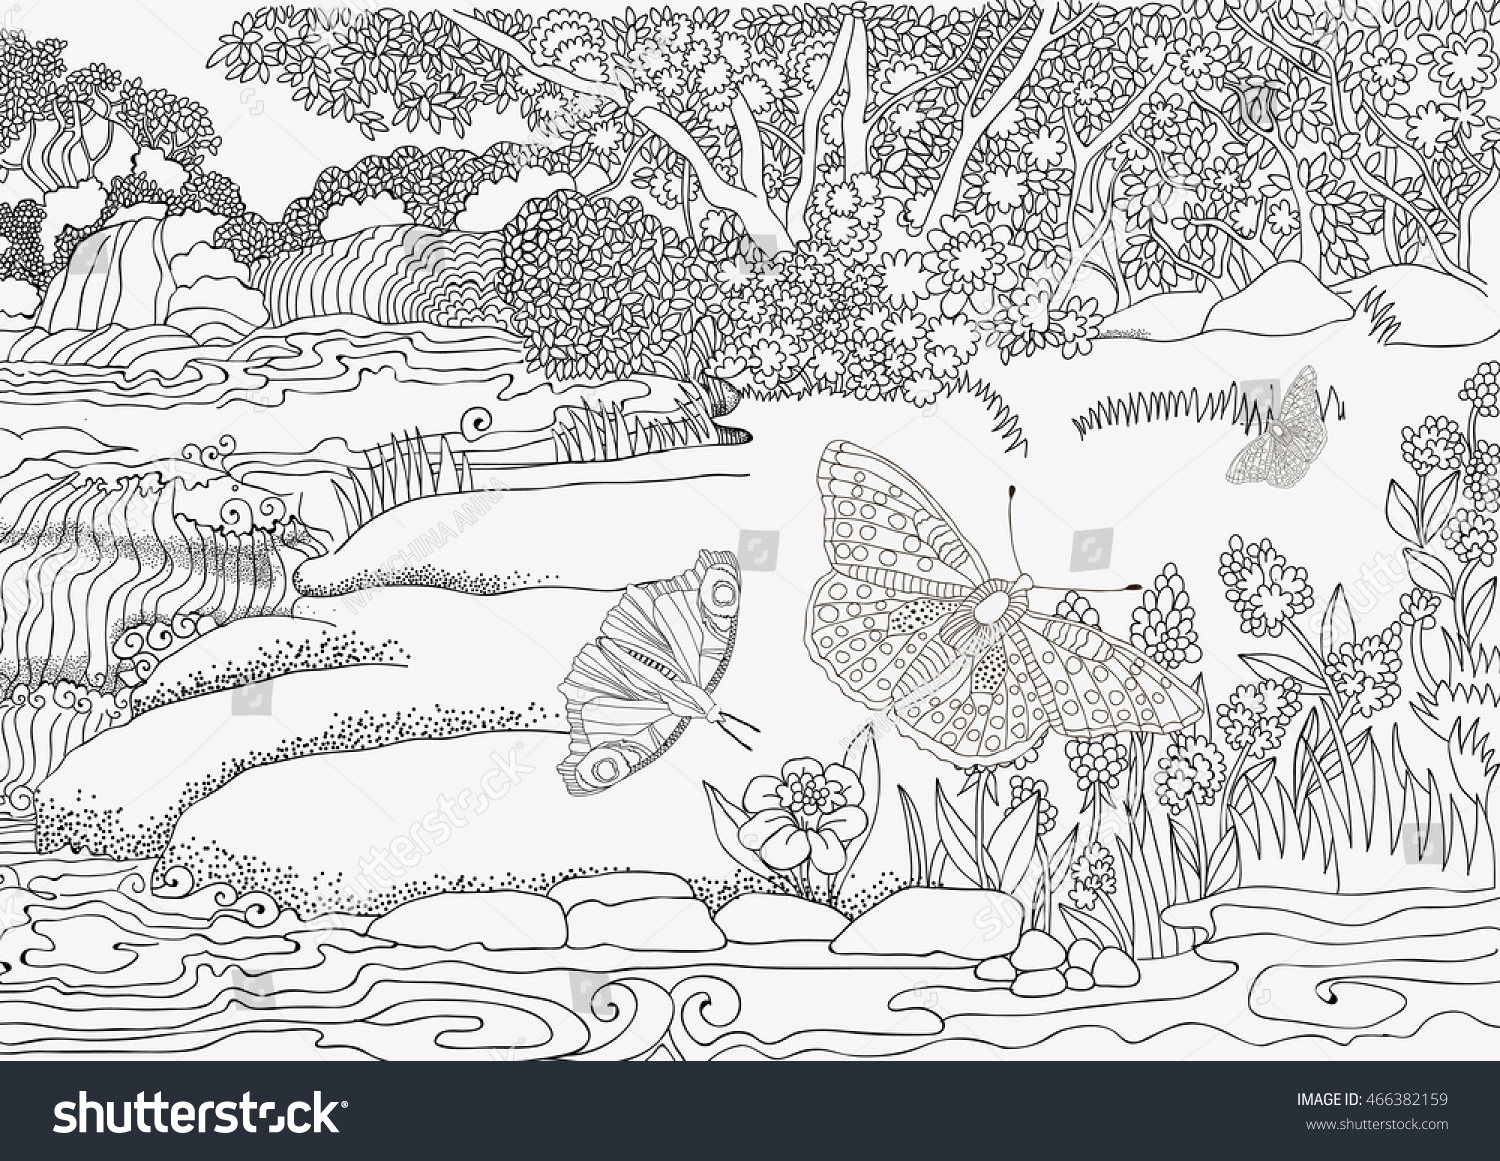 Beautiful Landscape Coloring Pages For Adults - Worksheet & Coloring ...